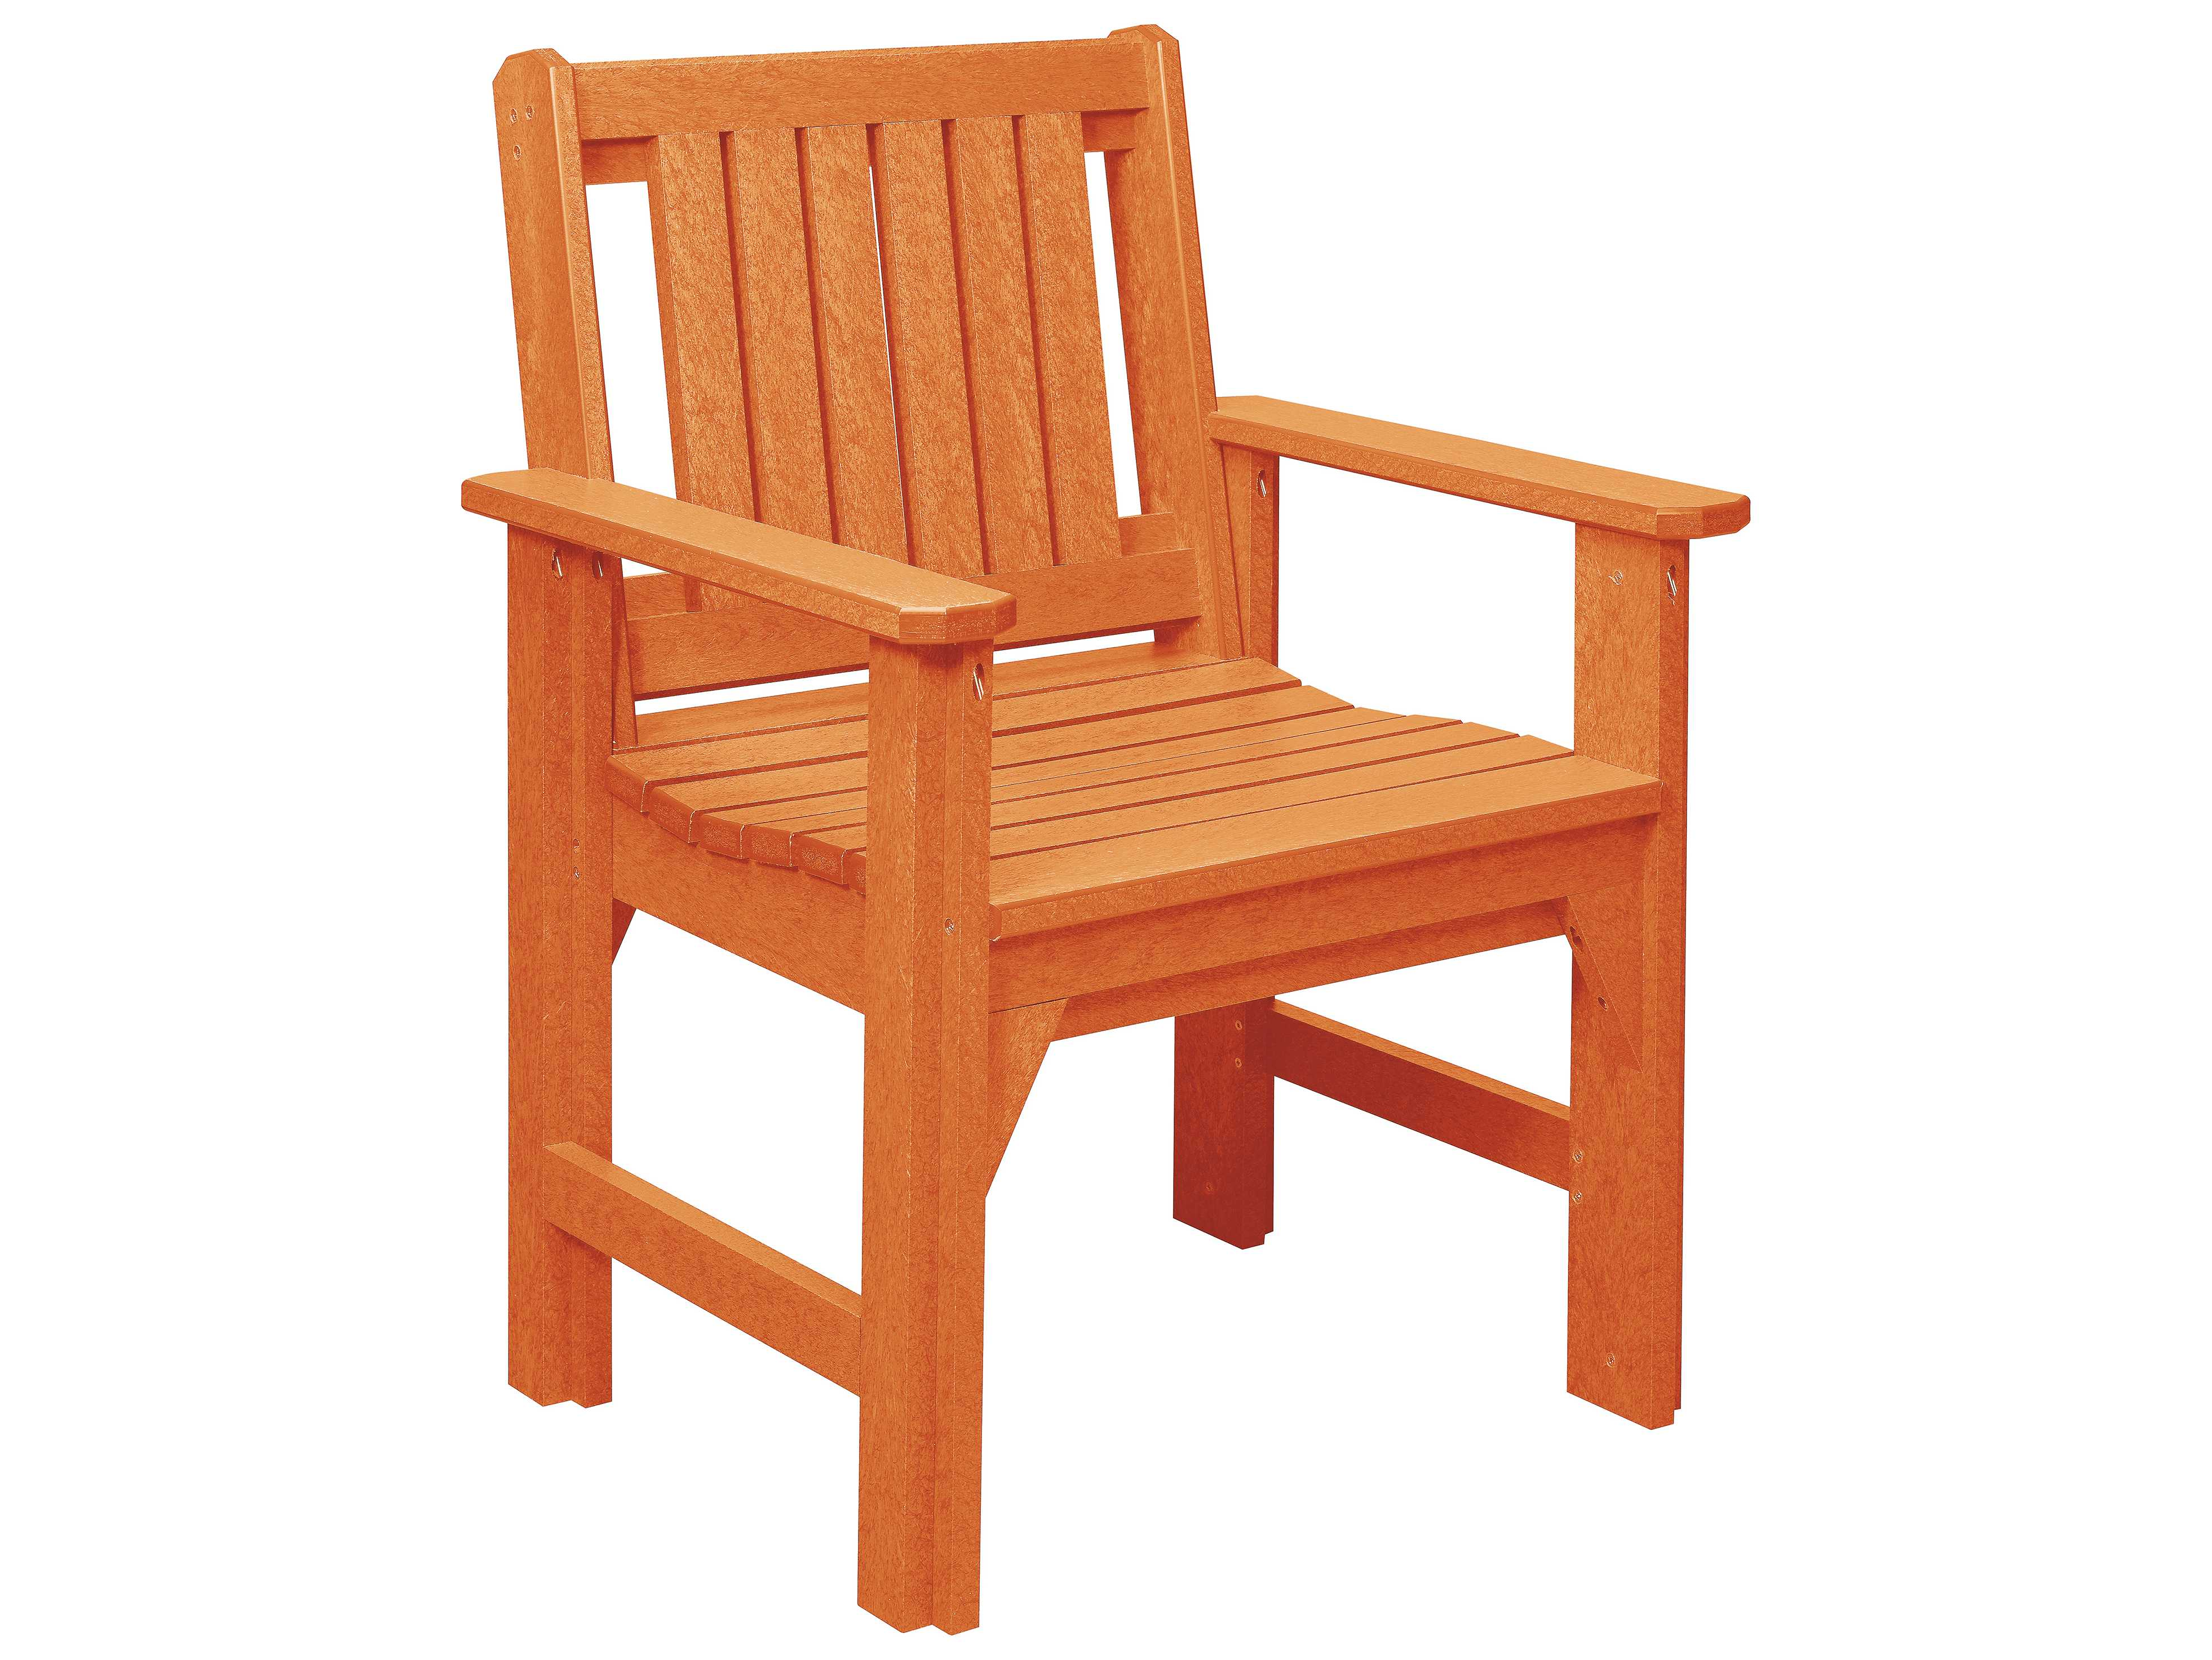 C R Plastic Generation Recycled Plastic Dining Chair Crc12